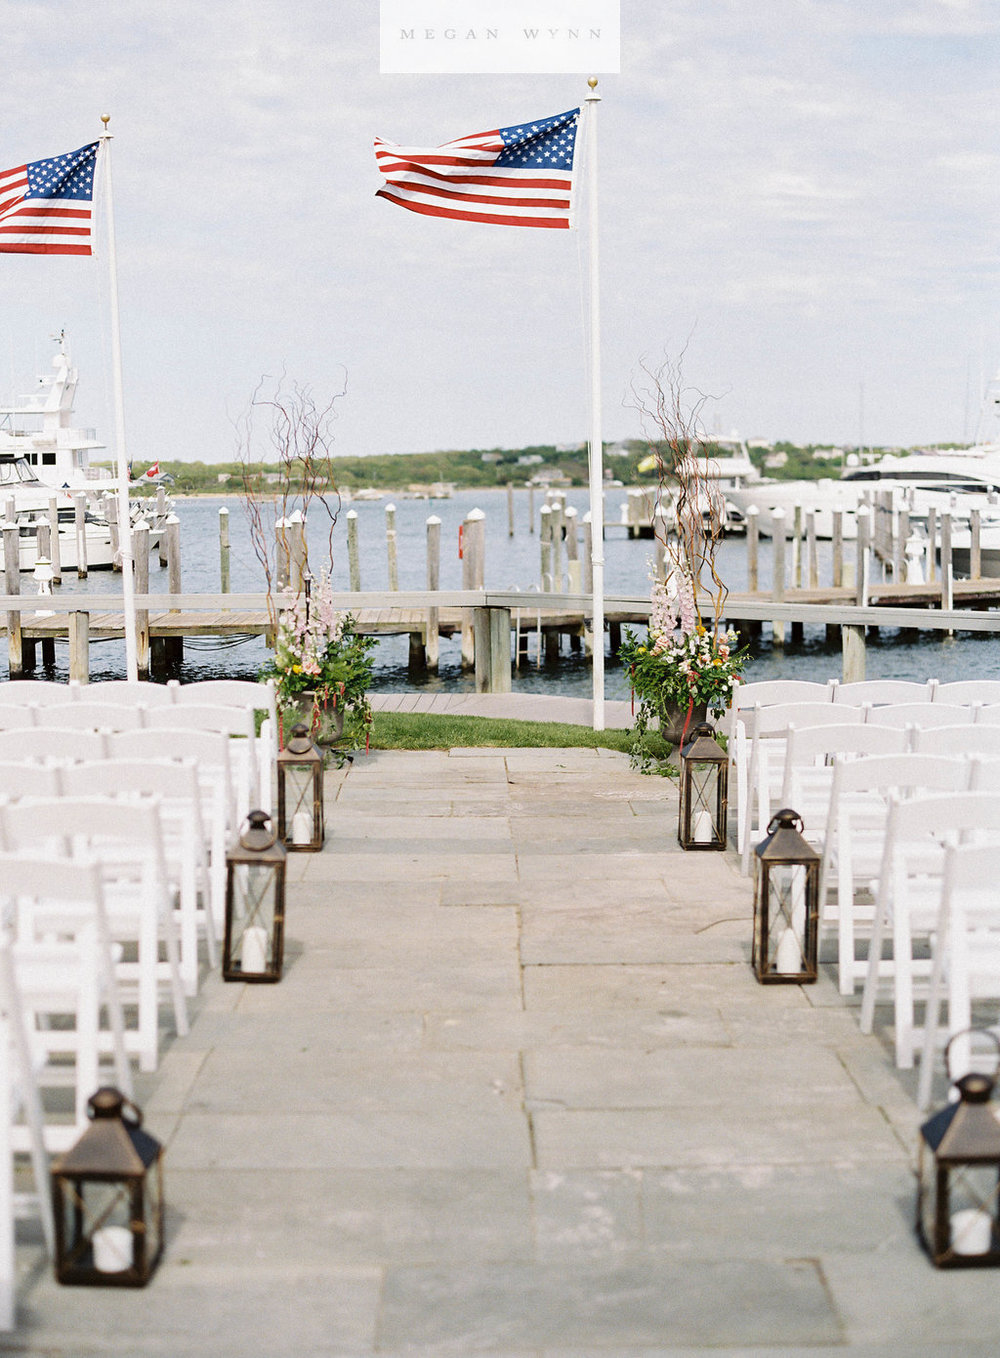 Megan_Wynn_Photography_Montauk_Yacht_Club_35.jpg